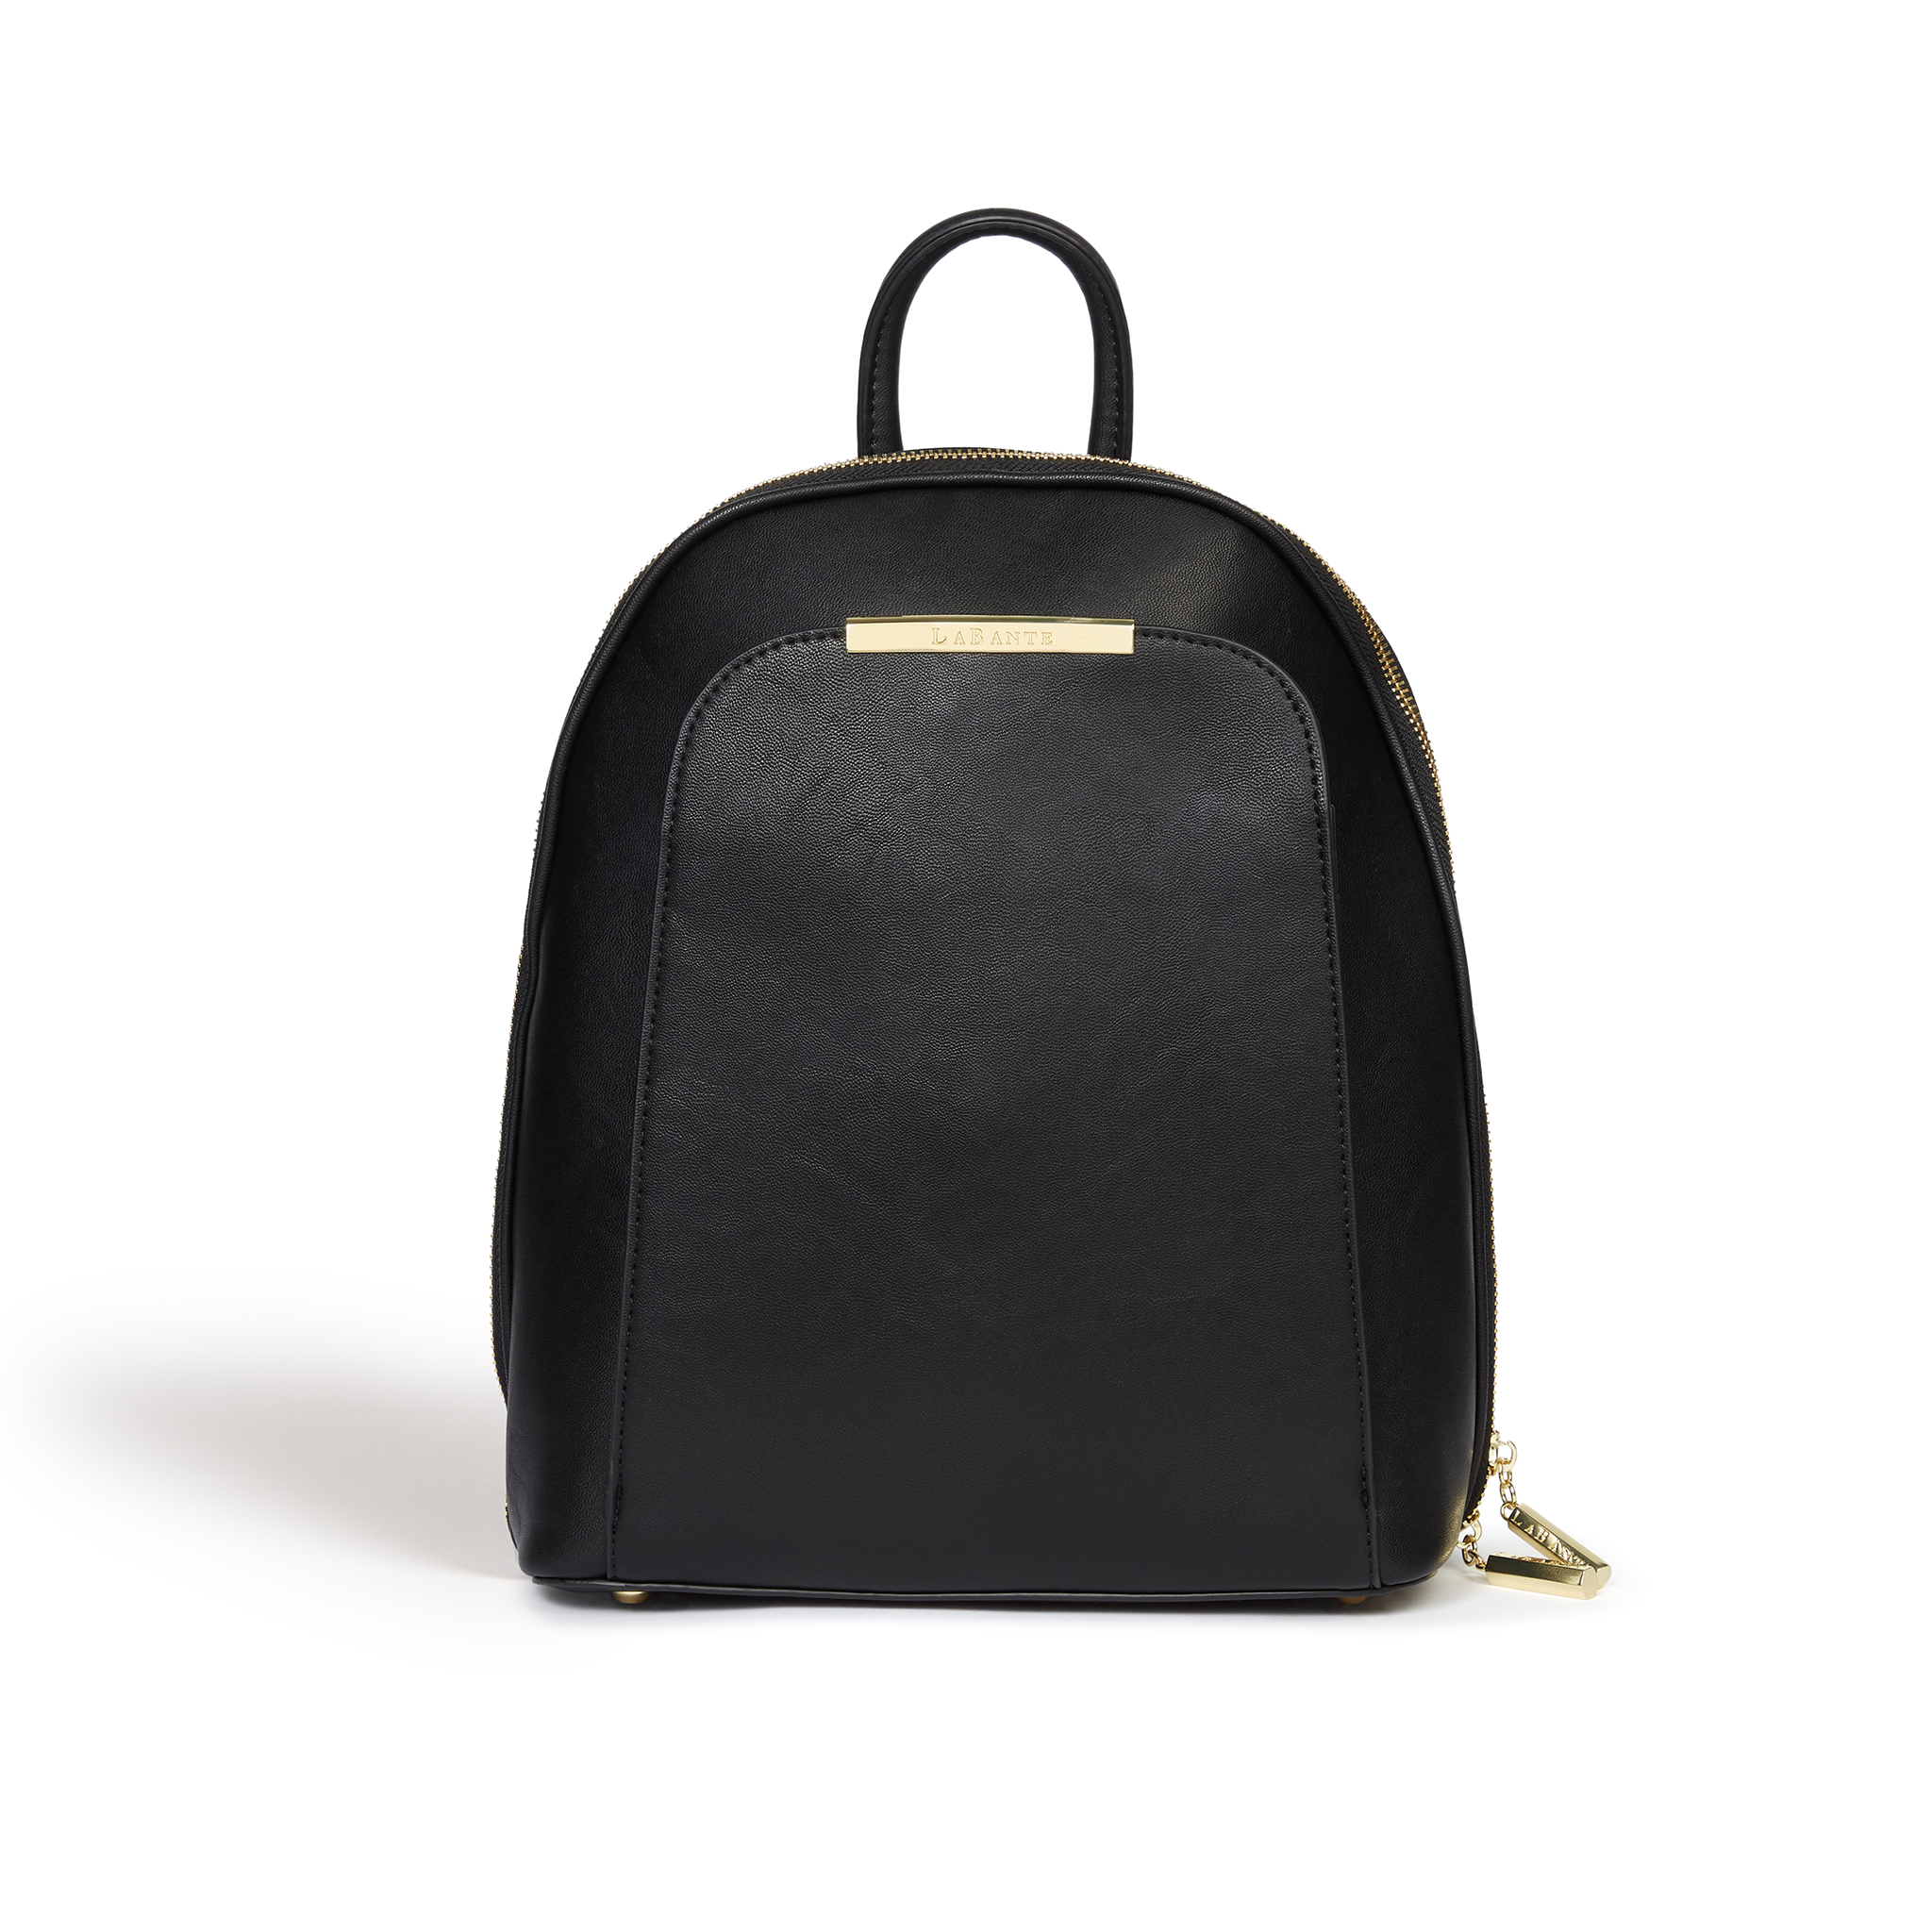 a5abb53d855 Sycamore Black Backpack | Vegan, sustainable & ethical bags ...